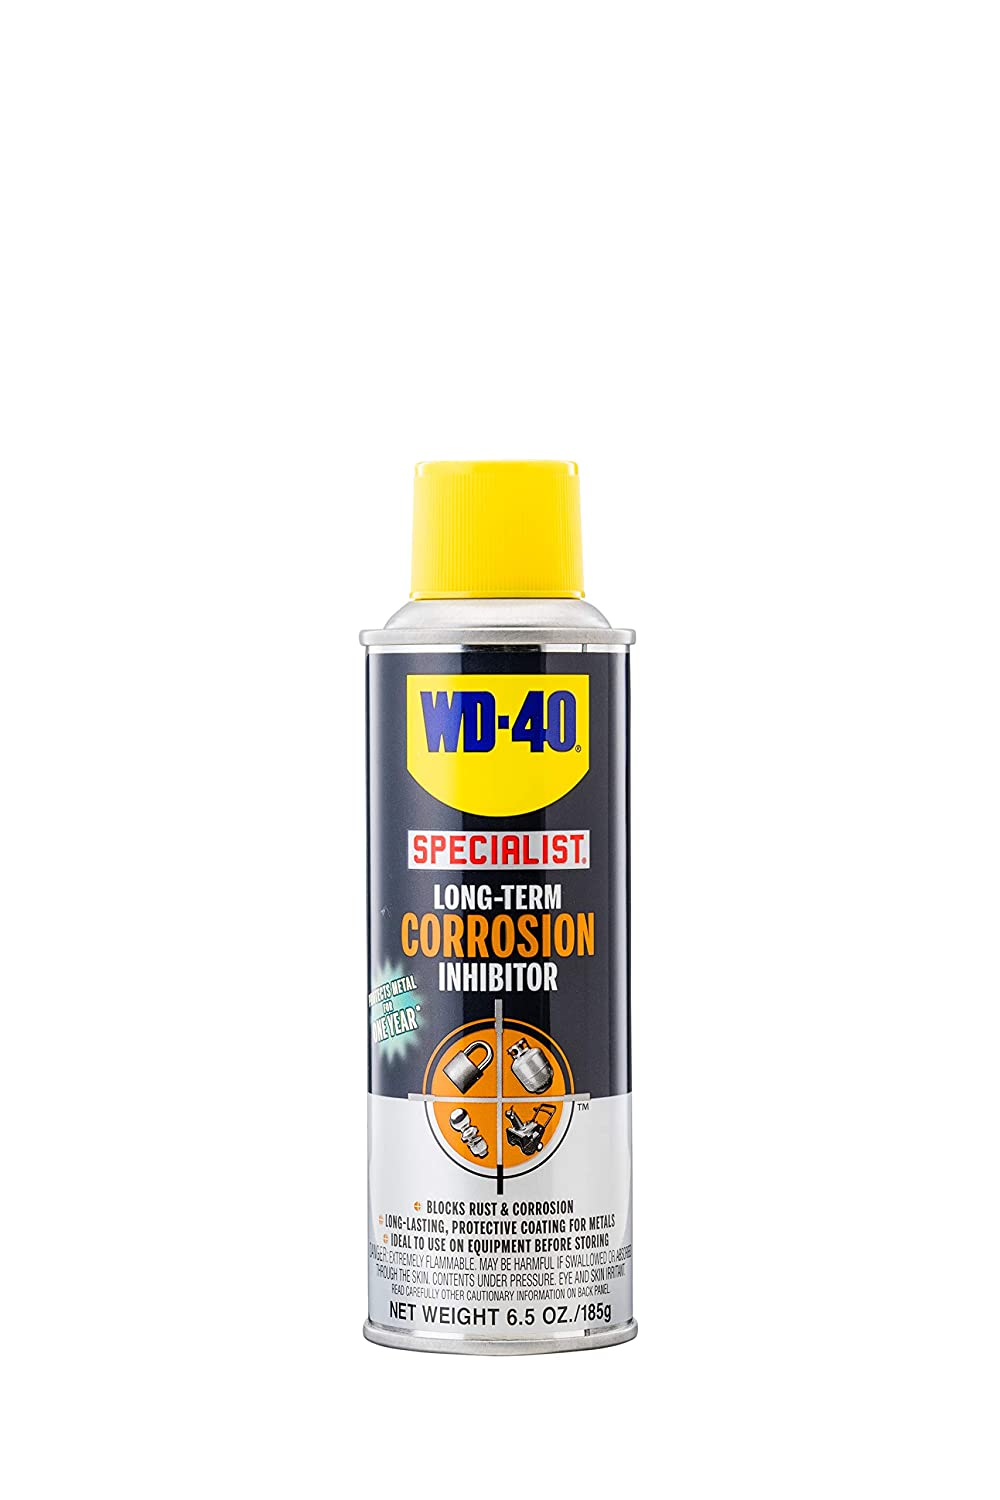 WD-40 Specialist Long Term Corrosion Inhibitor